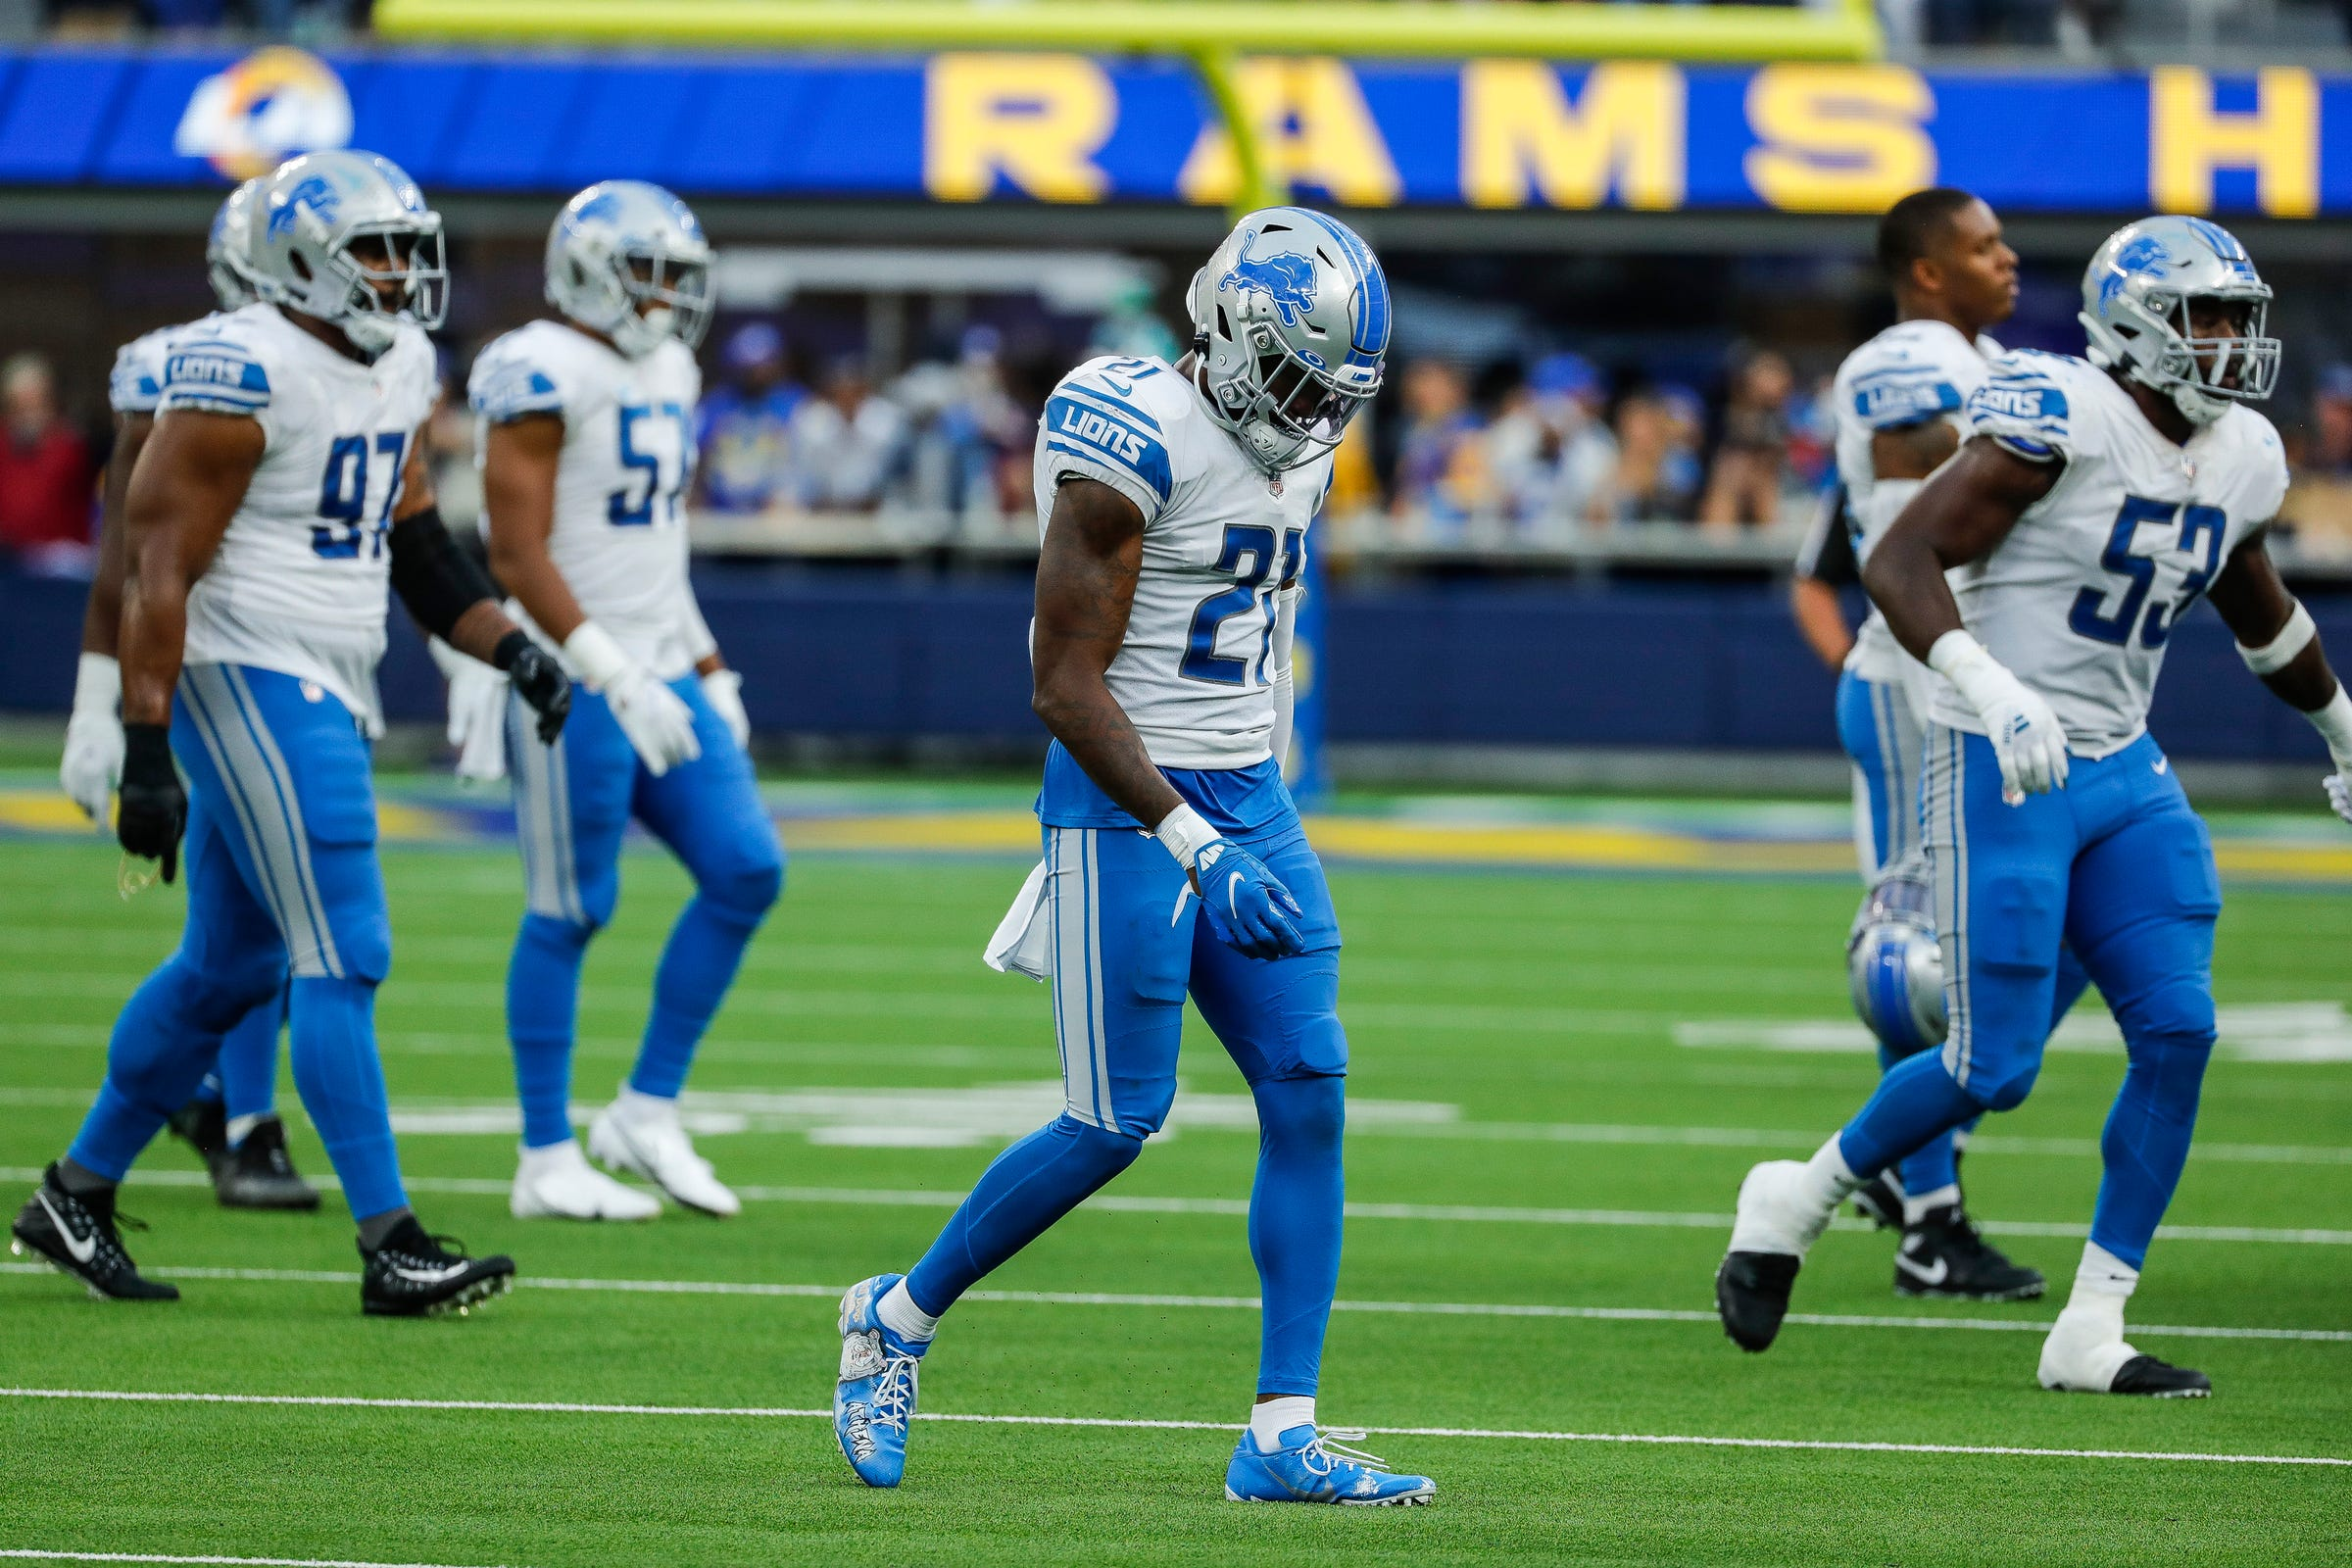 Moral victory for Detroit Lions on Sunday? Absolutely. Only losers would argue otherwise